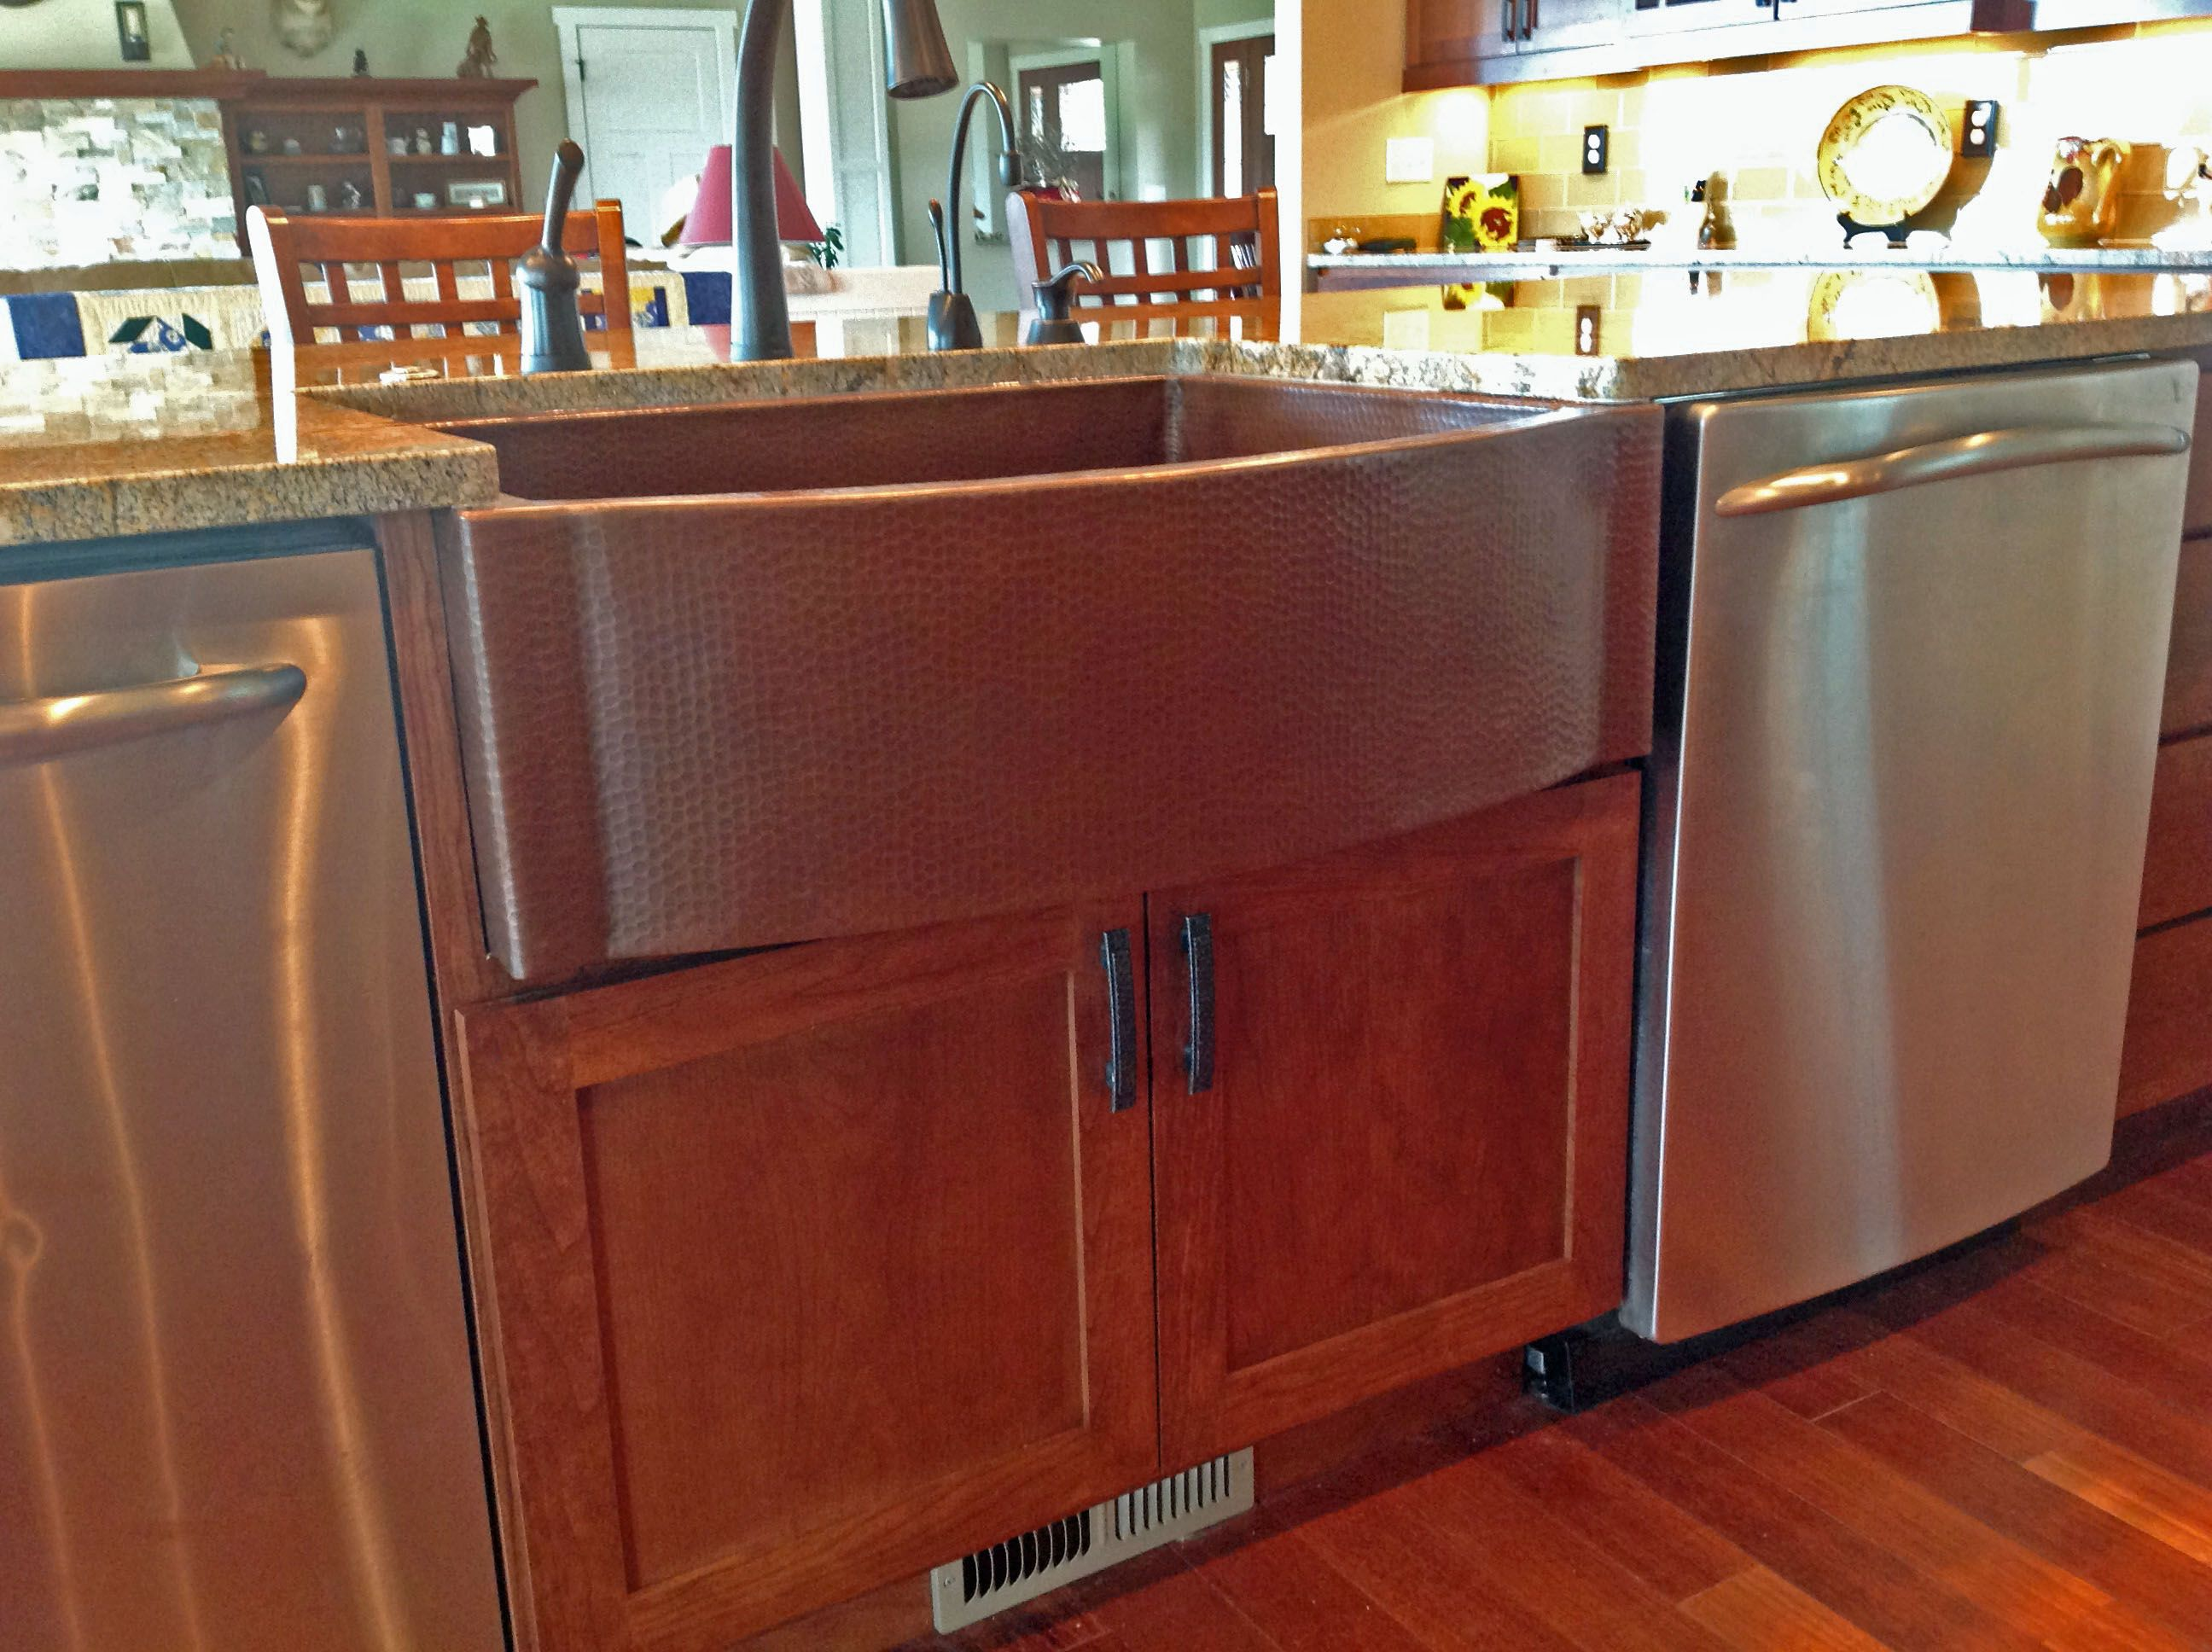 A Beautiful Cafe Natural Finish On This Copper Farmhouse Kitchen